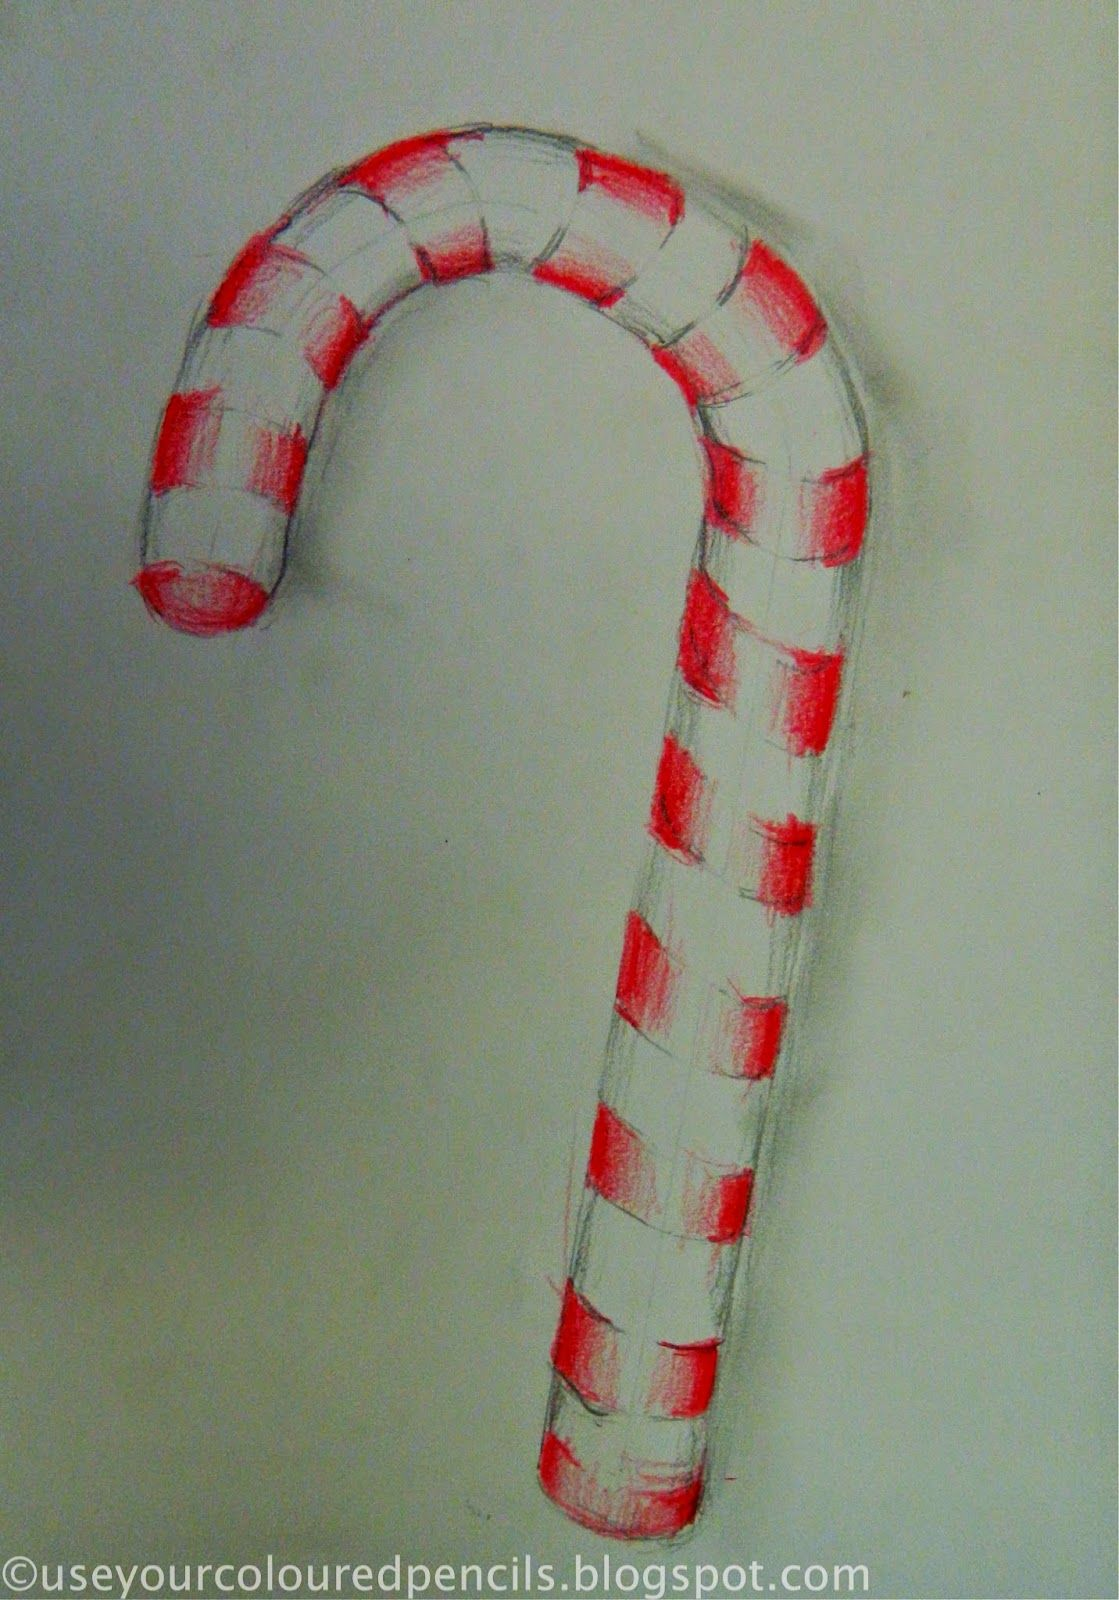 Candy Cane Drawings With Images Candy Drawing Candy Cane